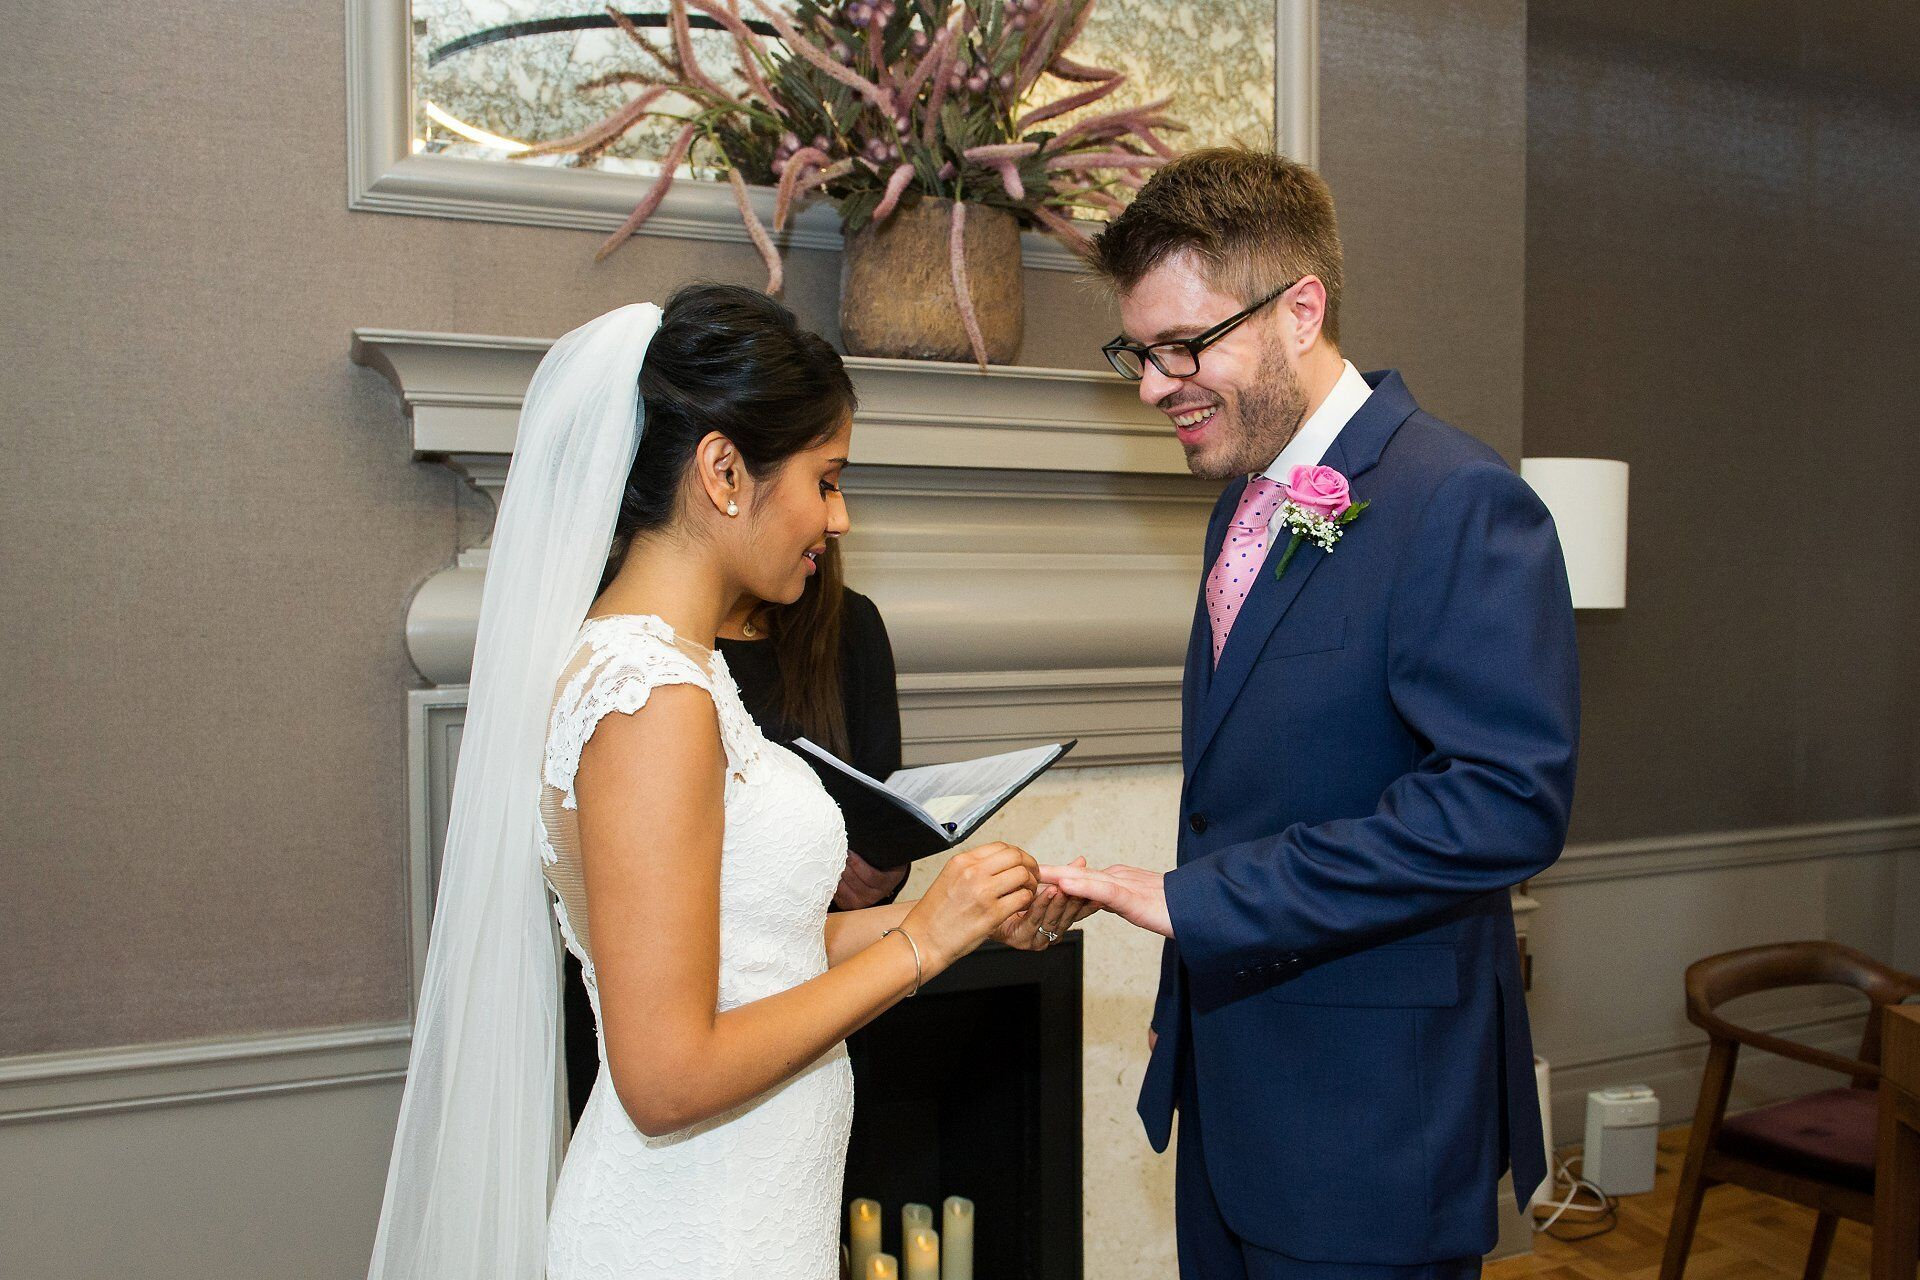 wedding photography by the hour in london for civil ceremonies and short small coverage packages